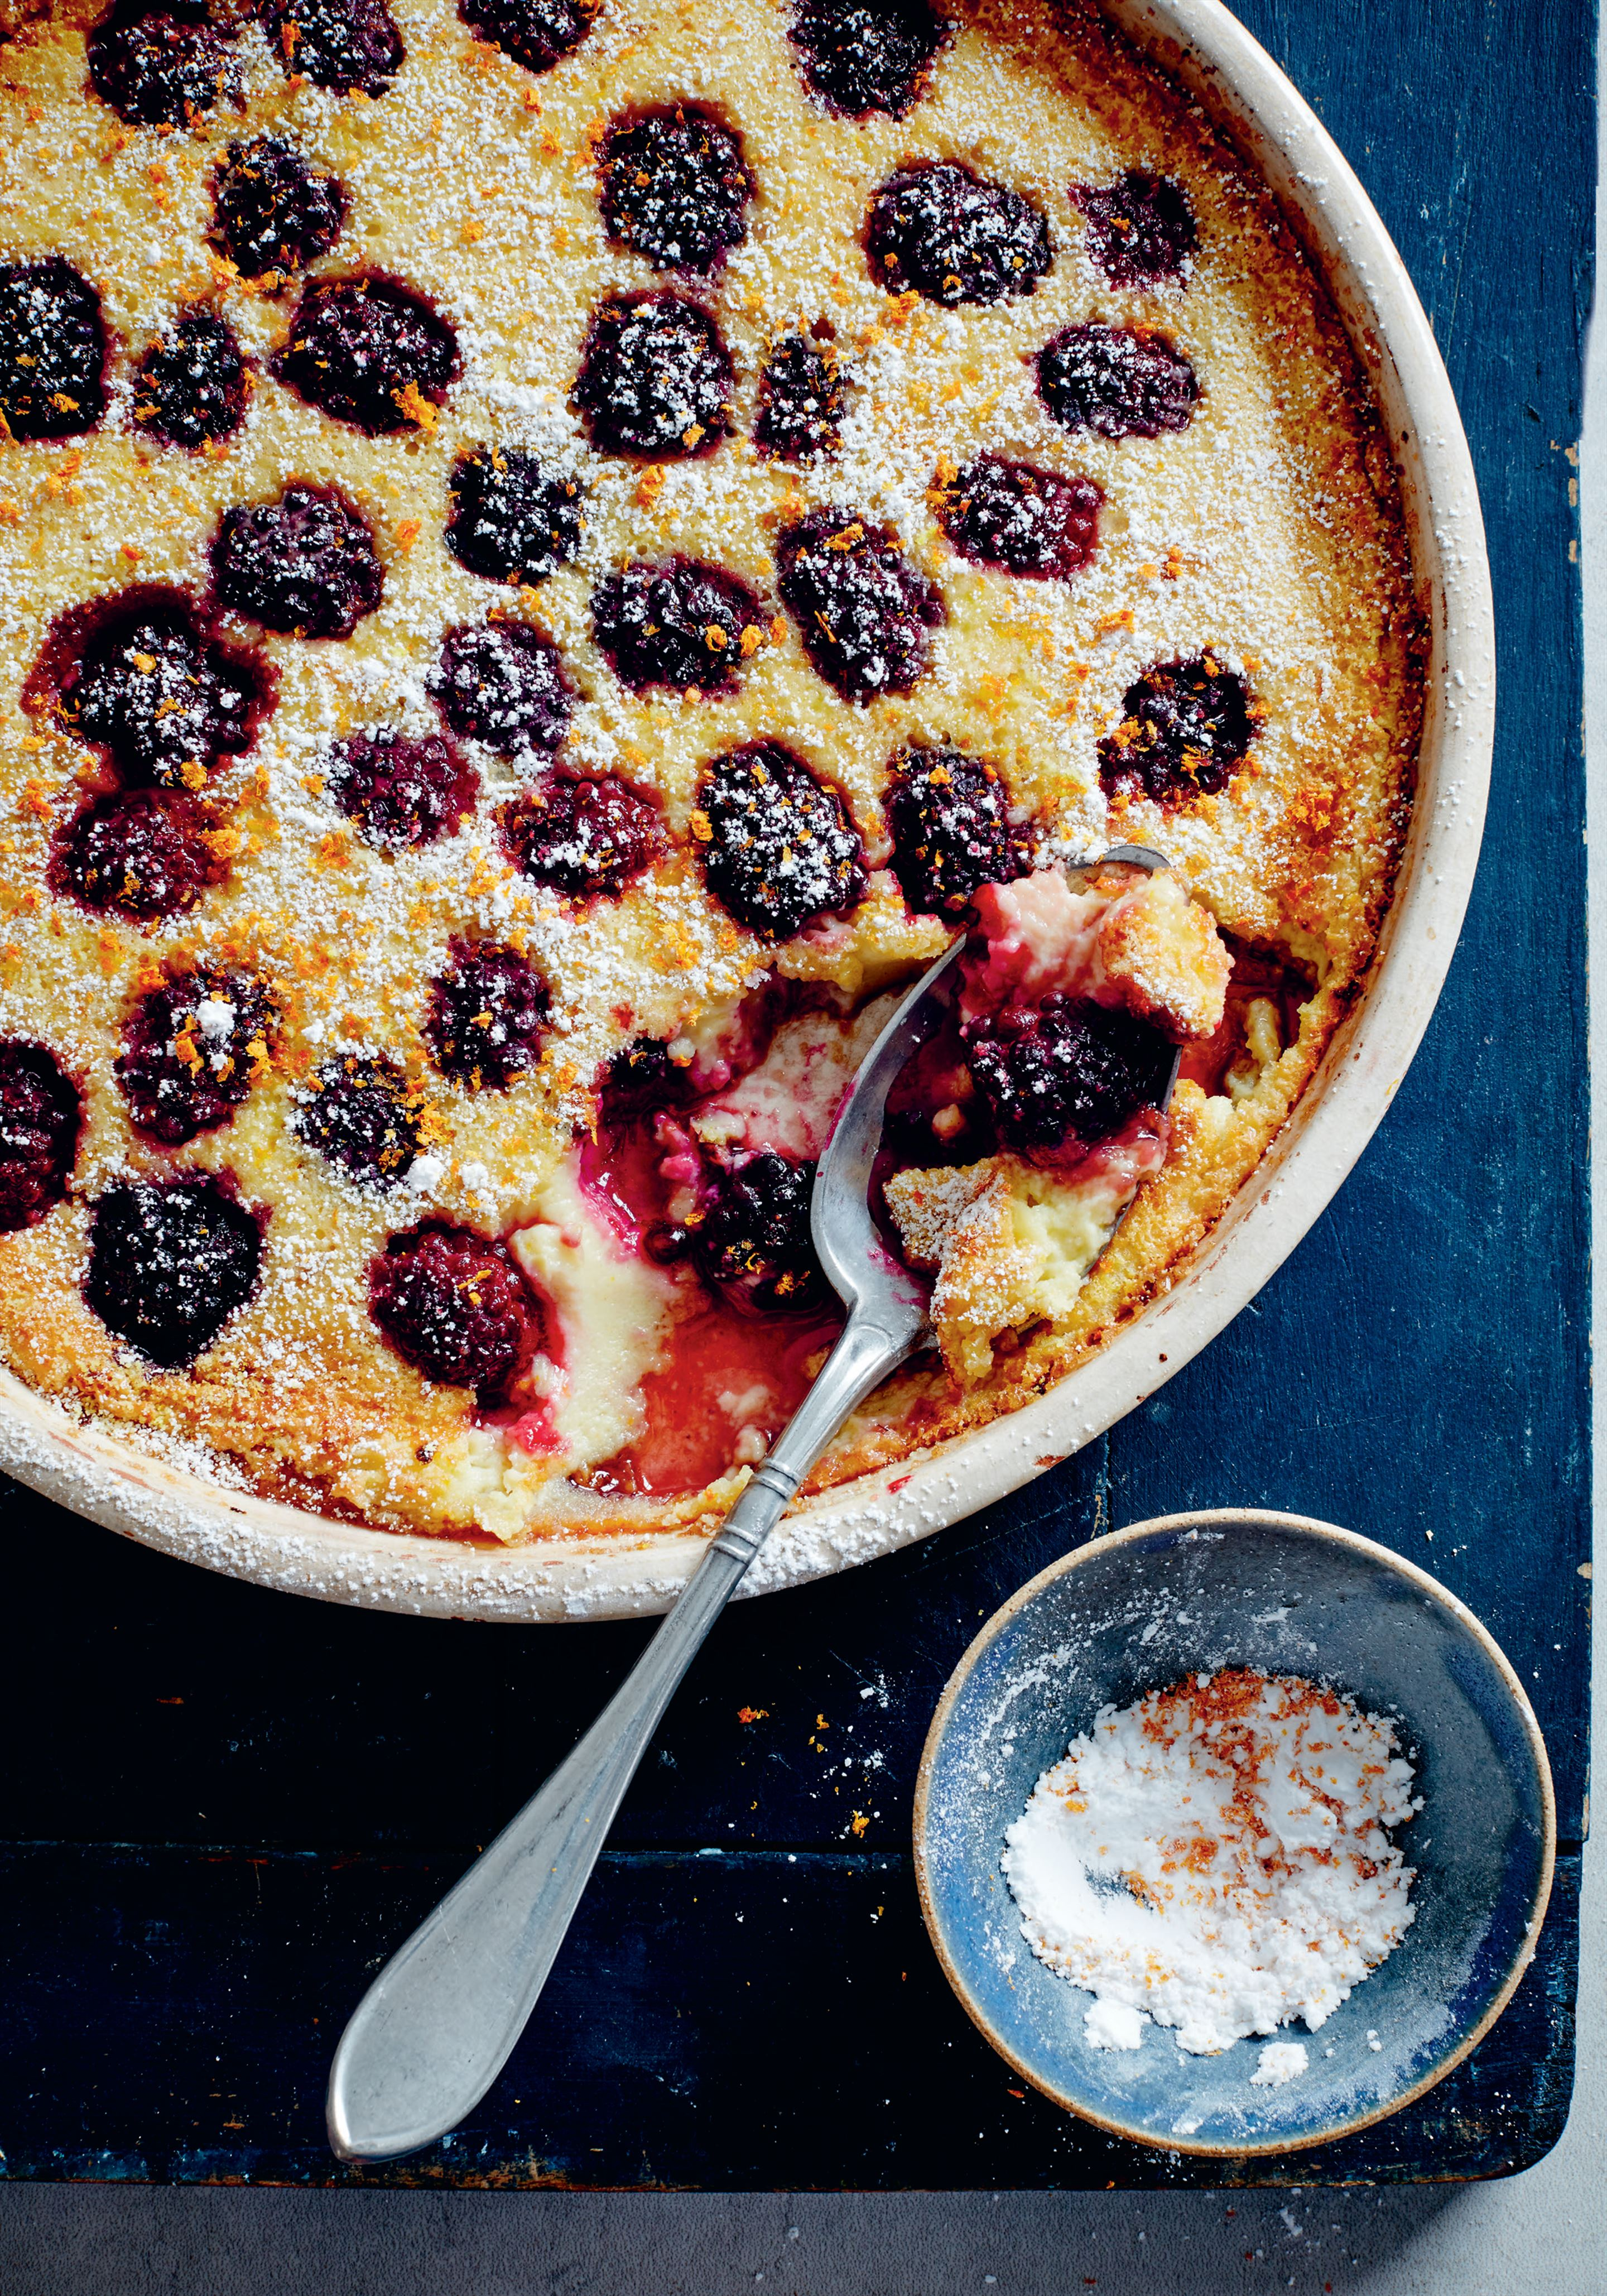 Blackberry, orange and orange blossom clafoutis